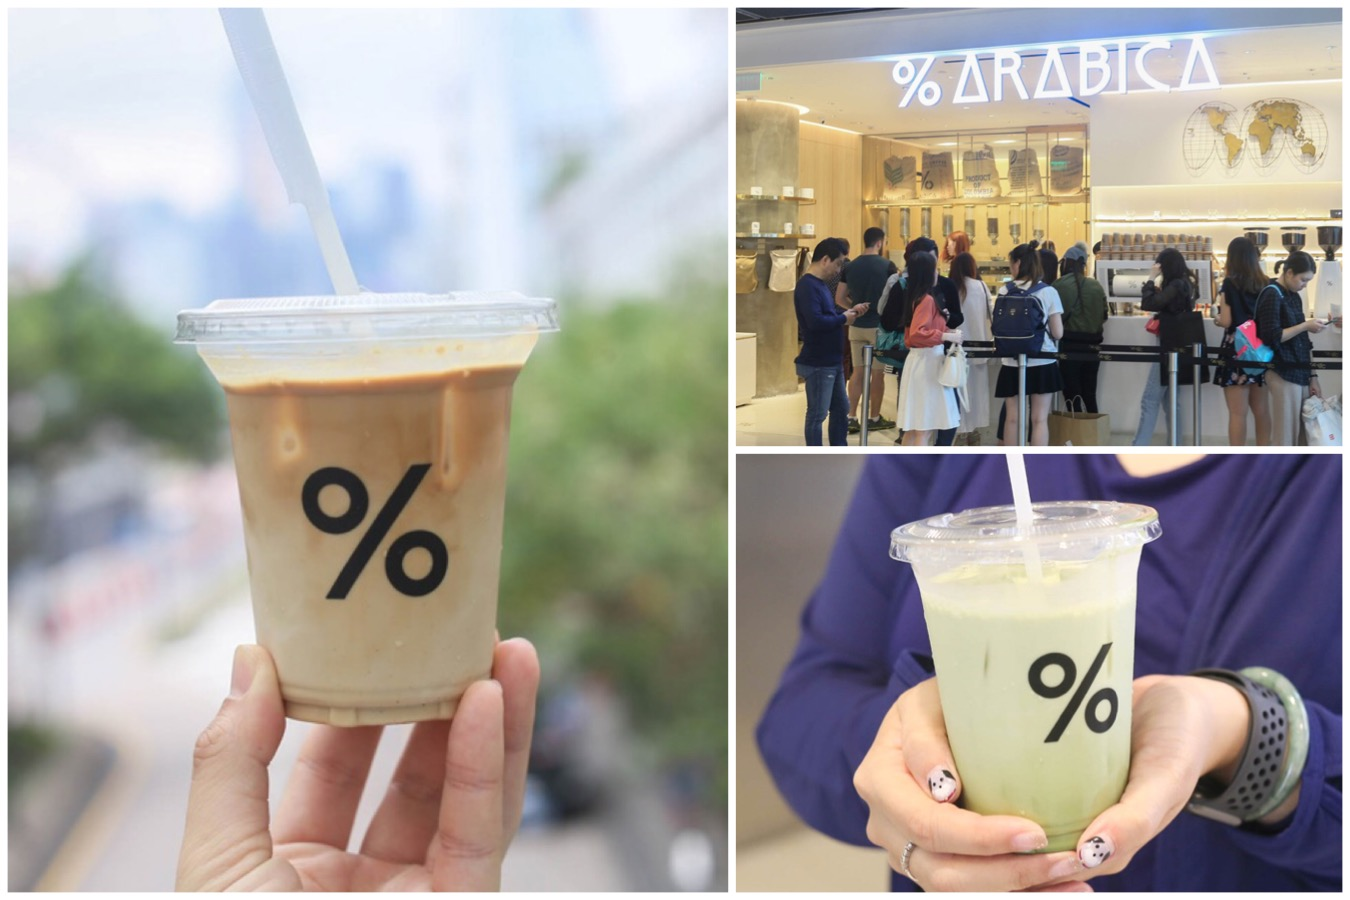 %Arabica - One Of Kyoto's And Hong Kong's Best Coffee Shops. With Plans To Open In Singapore